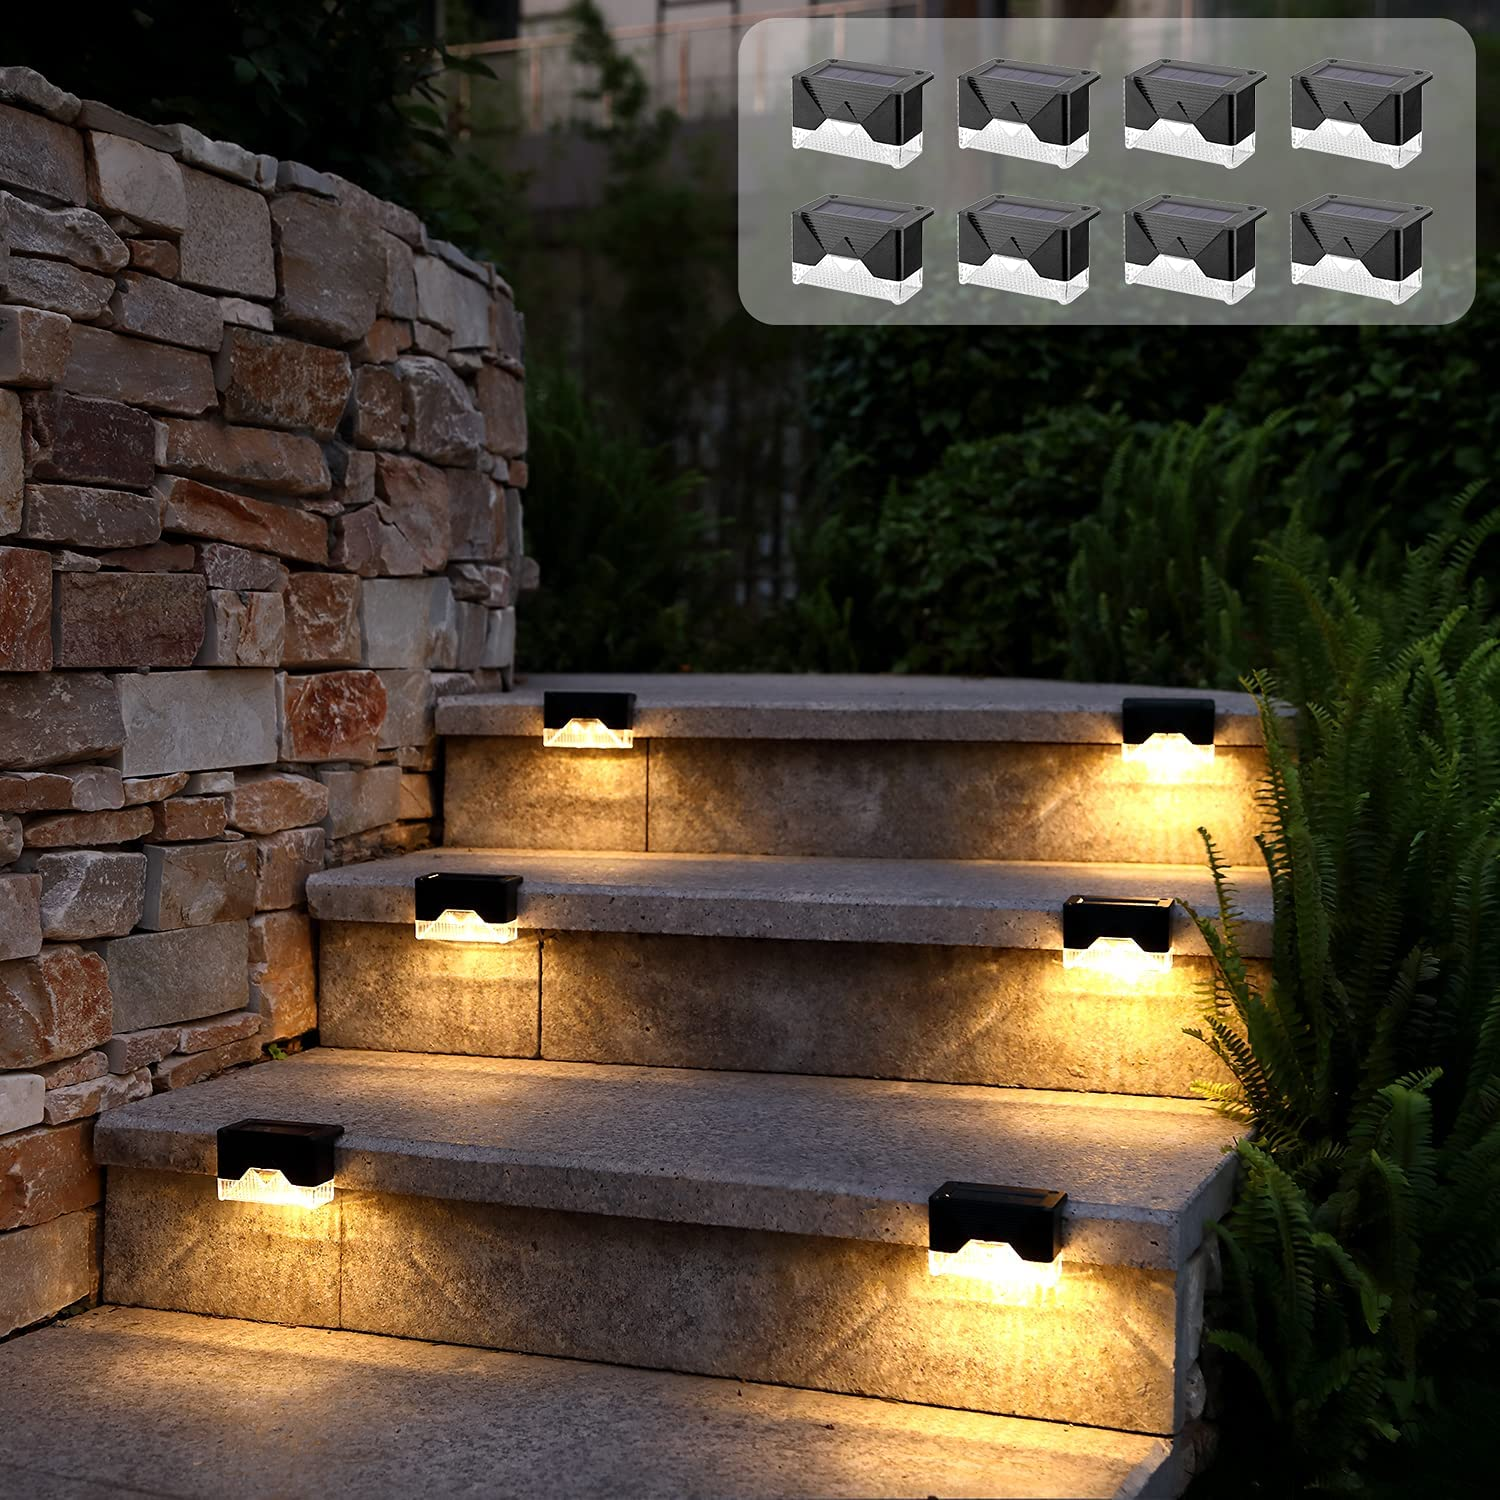 Solar Deck Lights 8 Max 90% OFF Pack Shipping included Sol Waterproof Fence LED